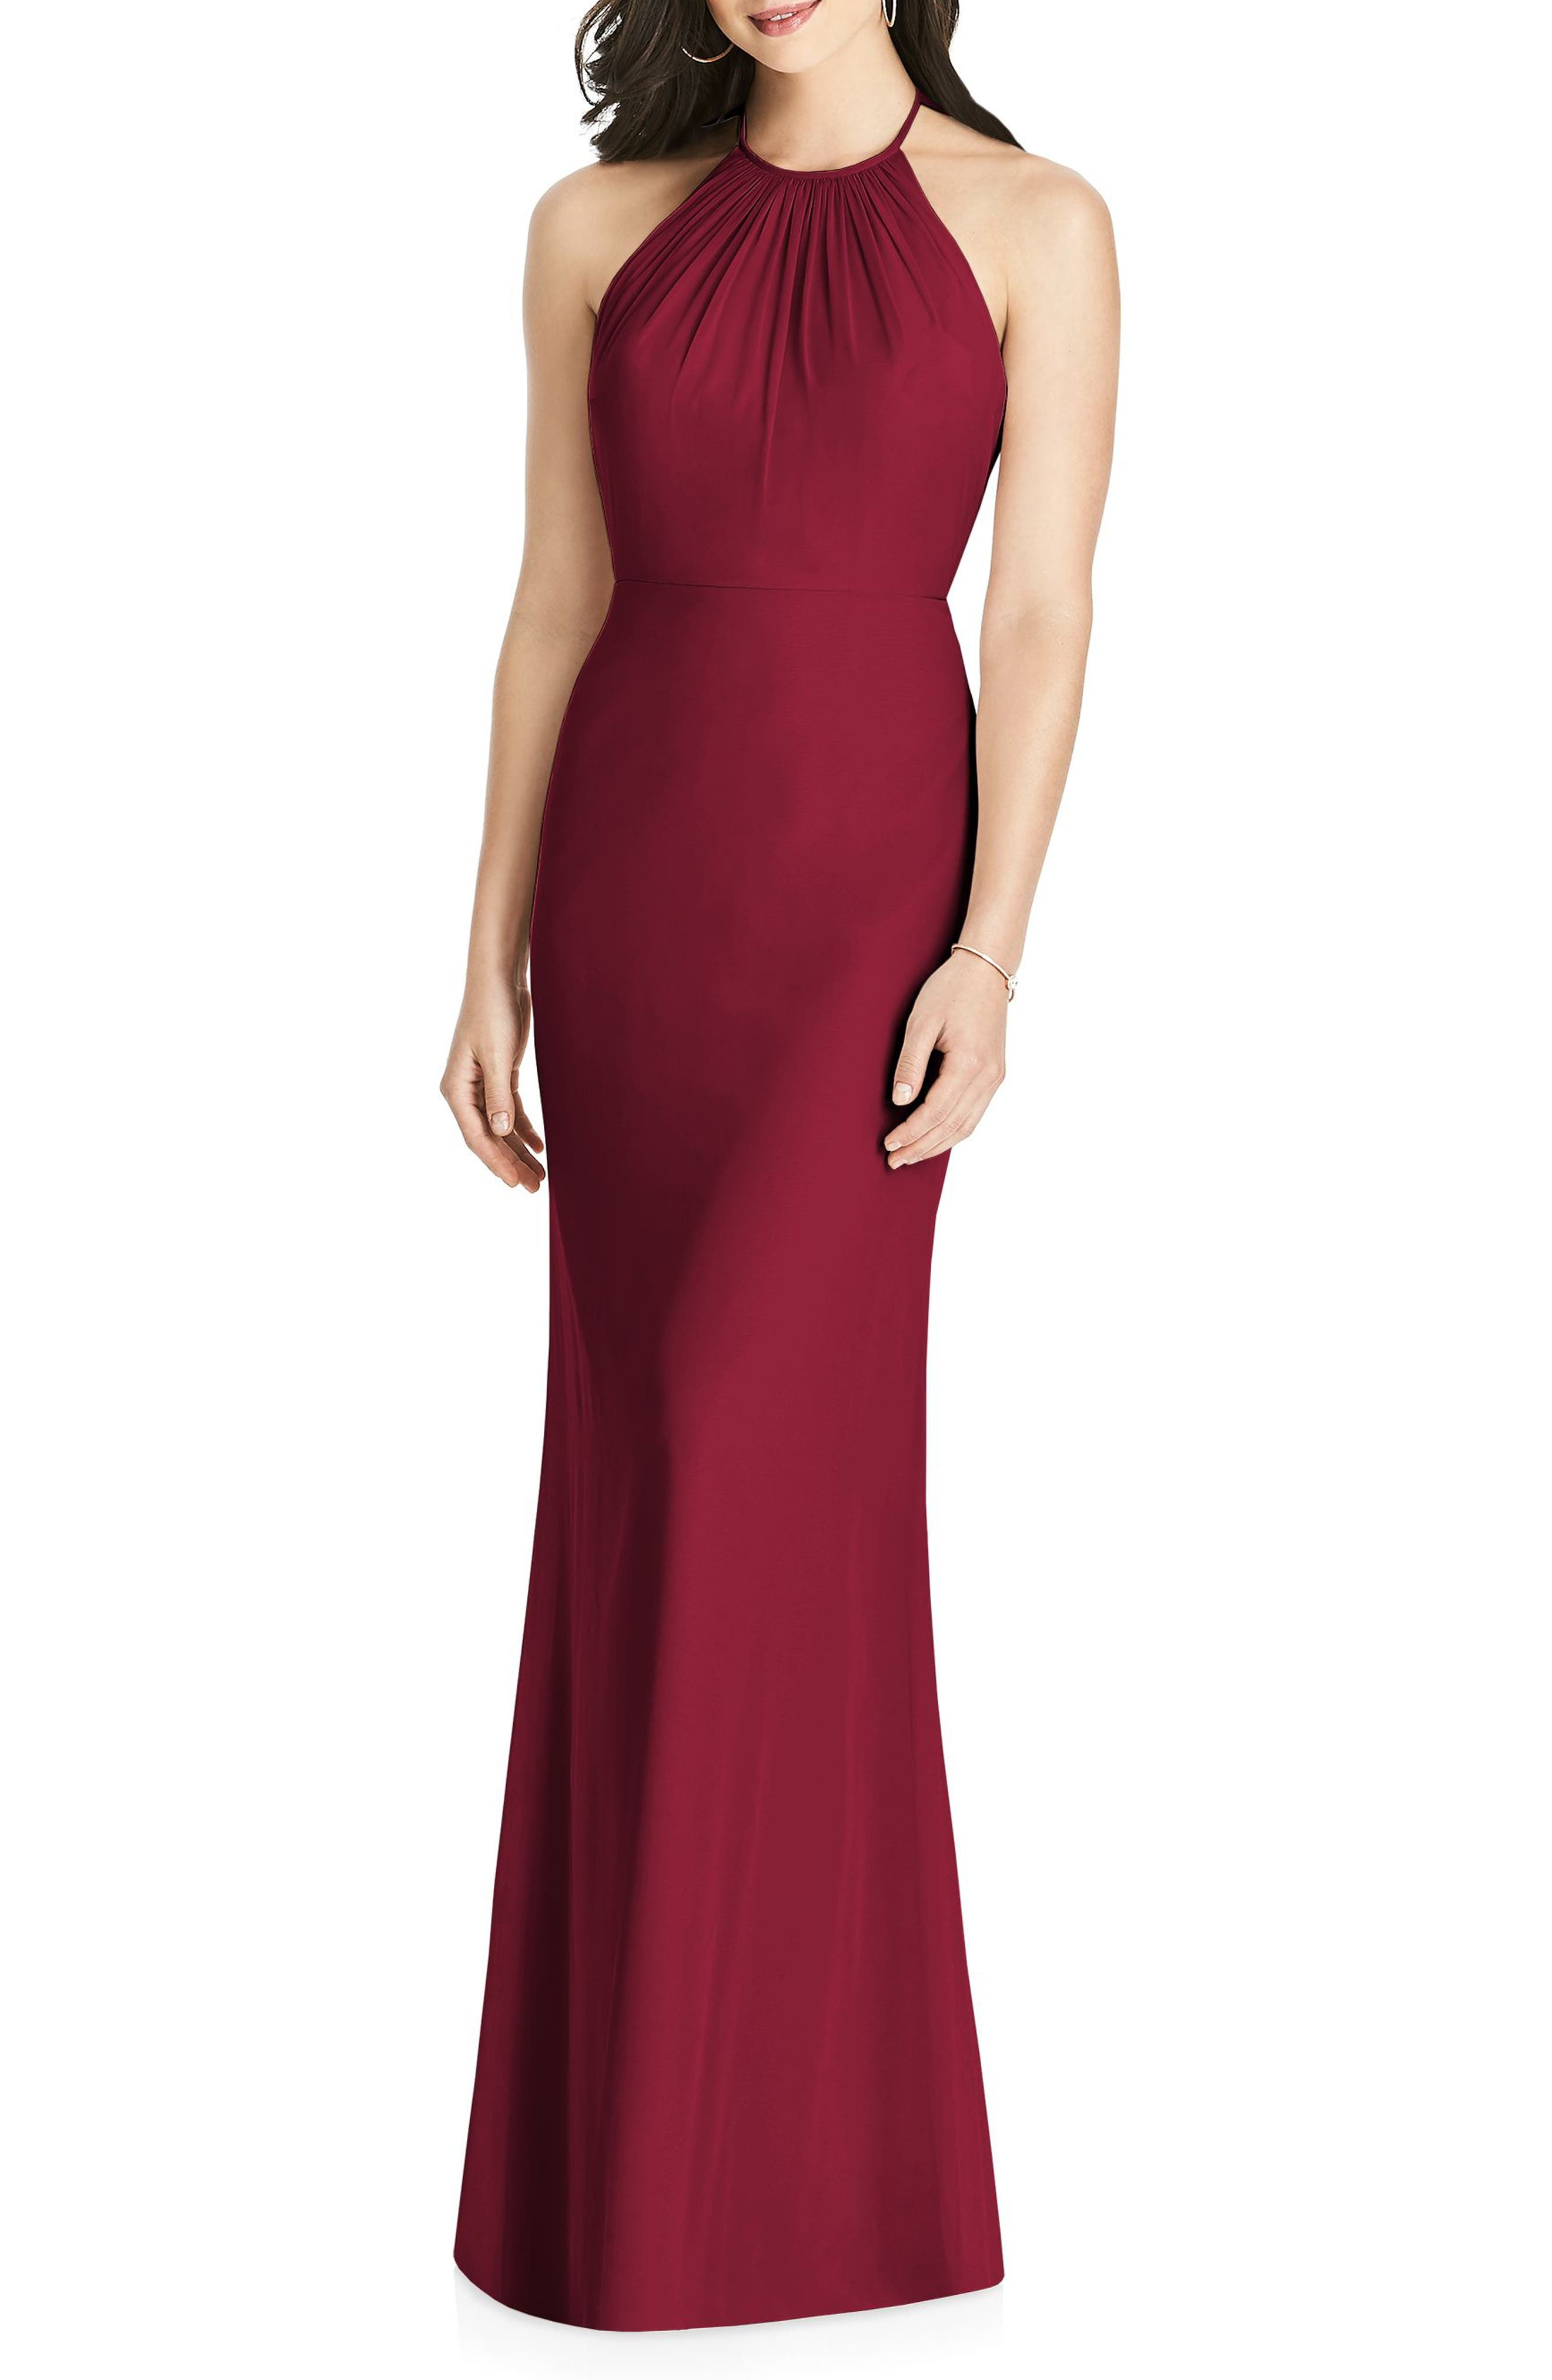 Dessy Collection Ruffle Back Chiffon Halter Gown, Burgundy